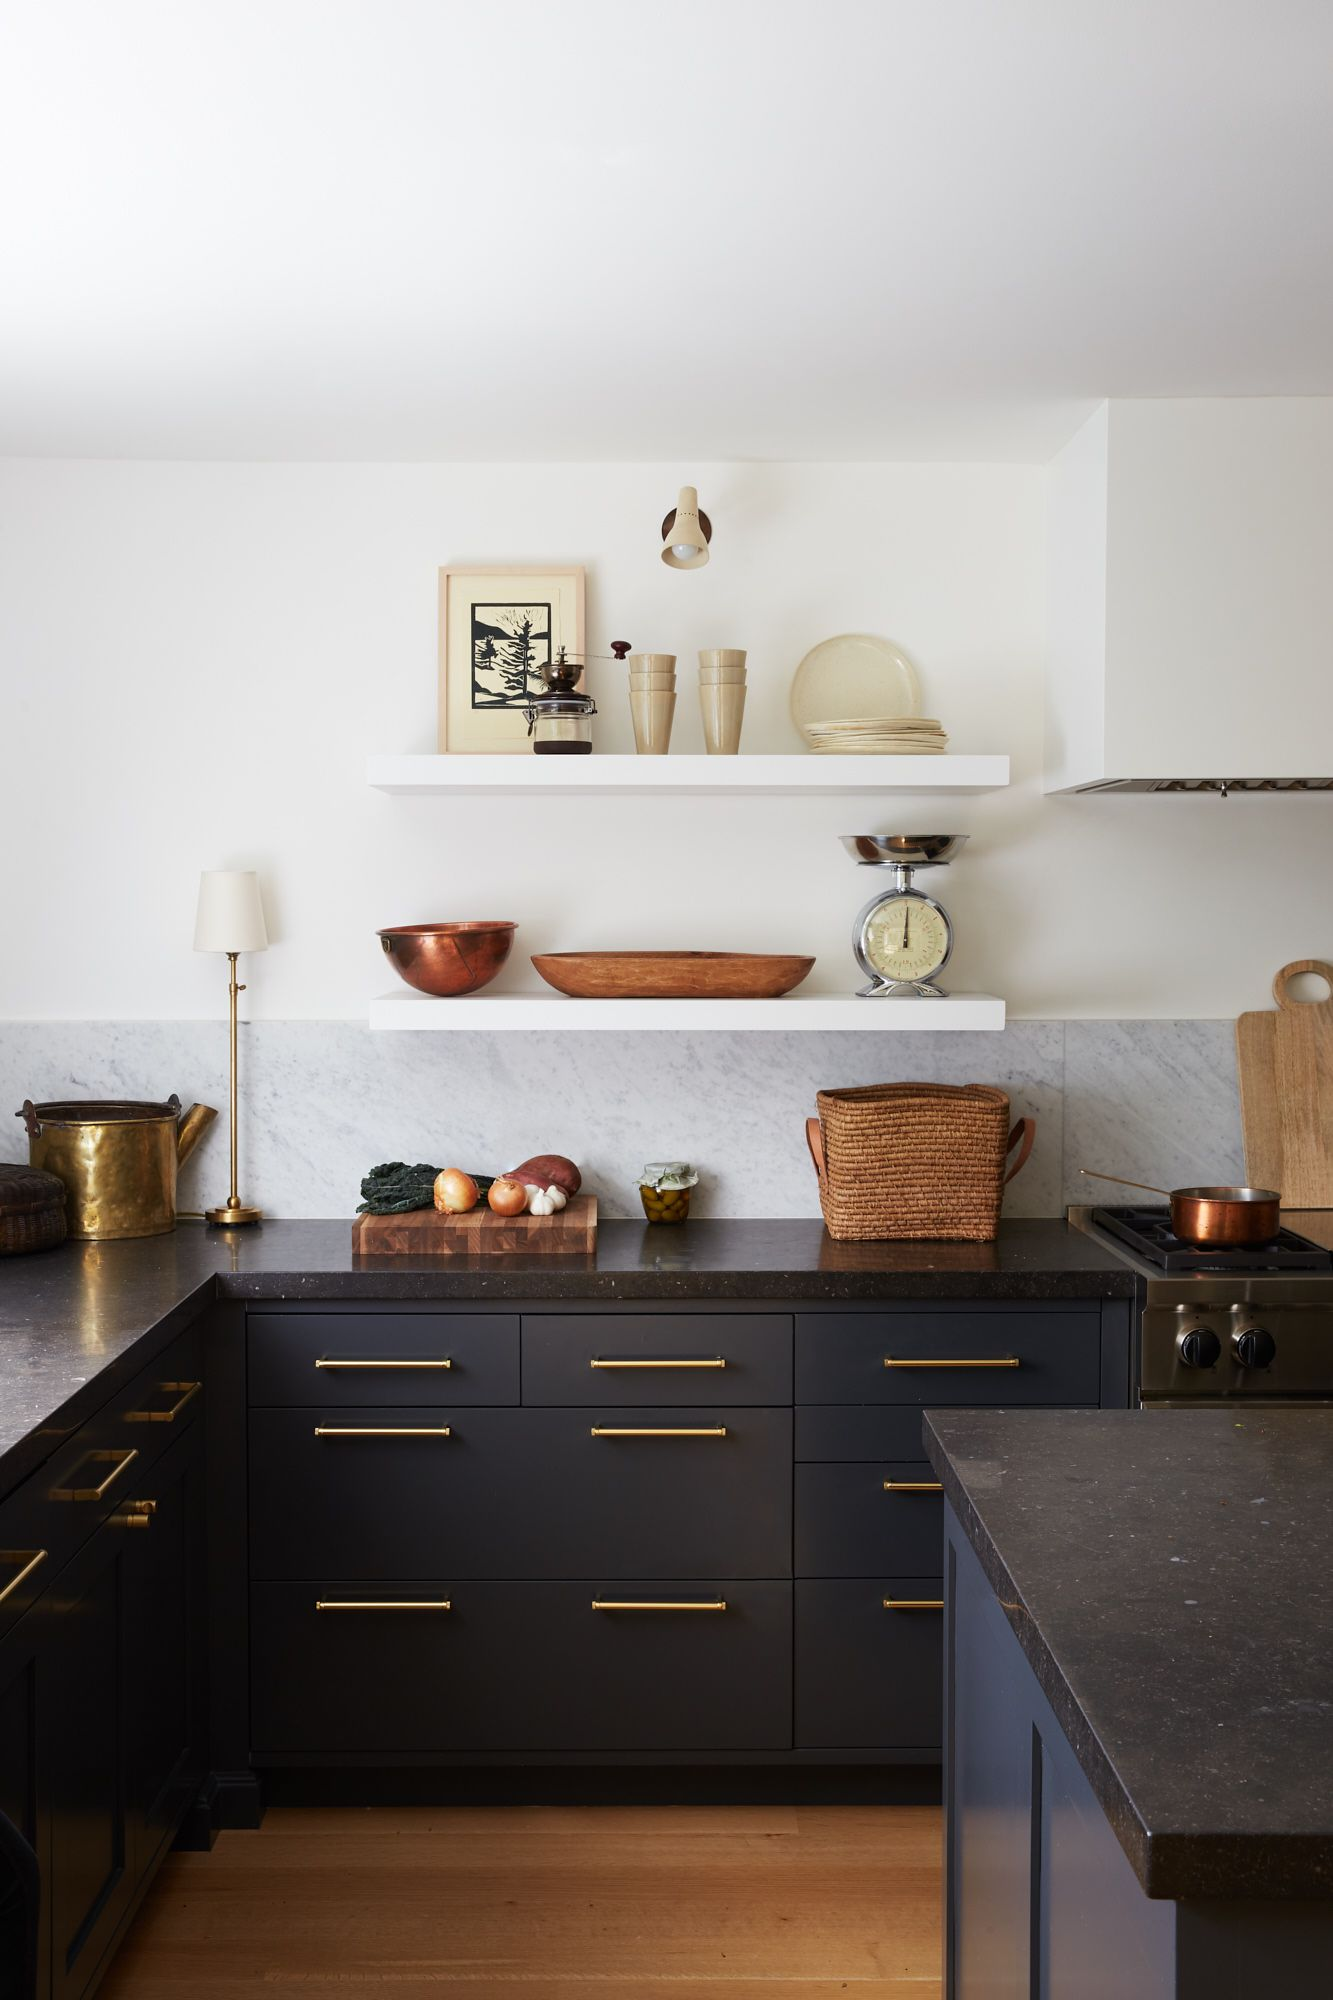 Black Base Cabinets With White Floating Shelves Above Brass Extra Long Pulls Alyssa Kapito